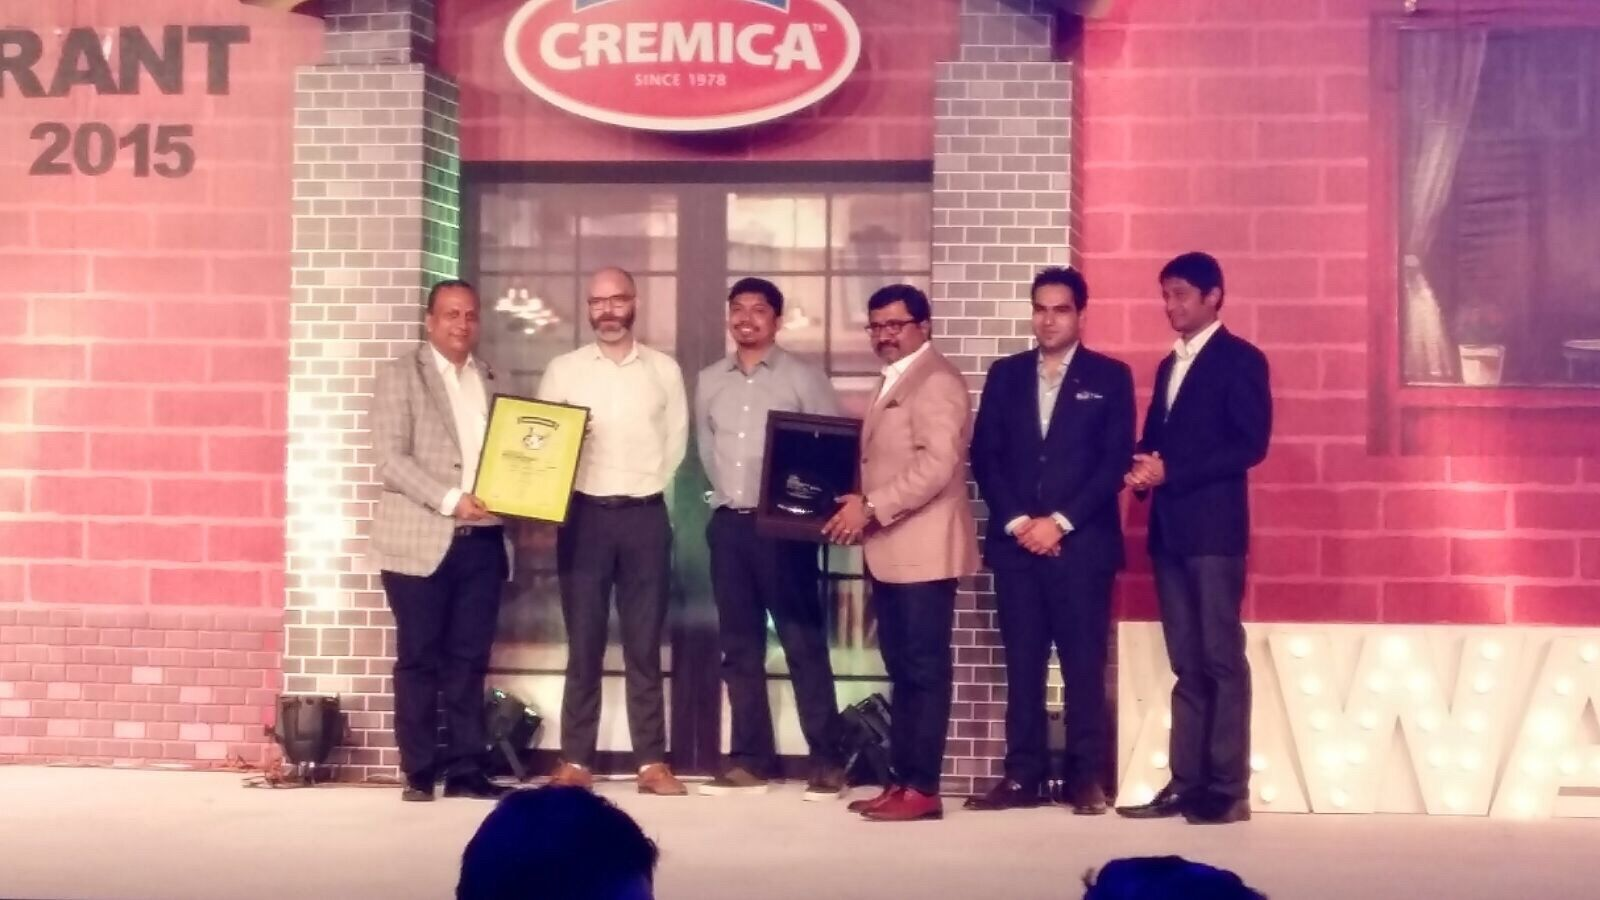 Feeling Awesome to share the participation glimpses of 5th Indian ‪#‎Restaurant‬ ‪#‎Congress‬ & ‪#‎Awards‬,2015, JW Marriott Aerocity,25th-26th August 2015. ‪#‎ONE‬ MEGA SHOW ‪#‎WON‬ AWARD AMONG 500+ Food Service Professionals,300+ #Restaurant ‪#‎Brands‬,50+ Global Experts & Innovators.